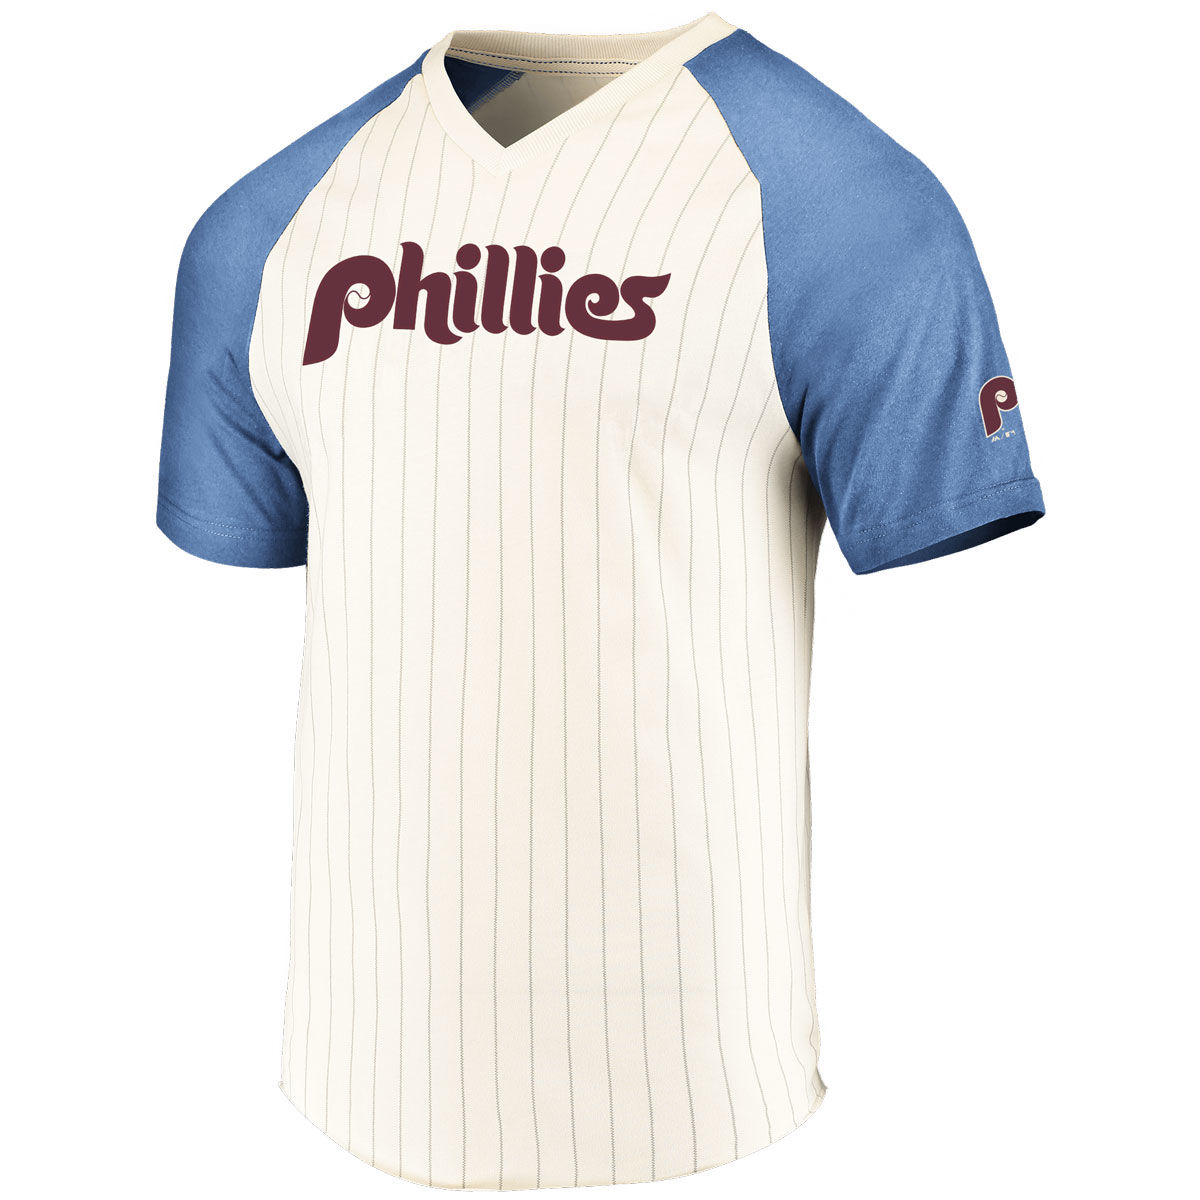 Philadelphia Phillies Adult Cooperstown T-Shirt